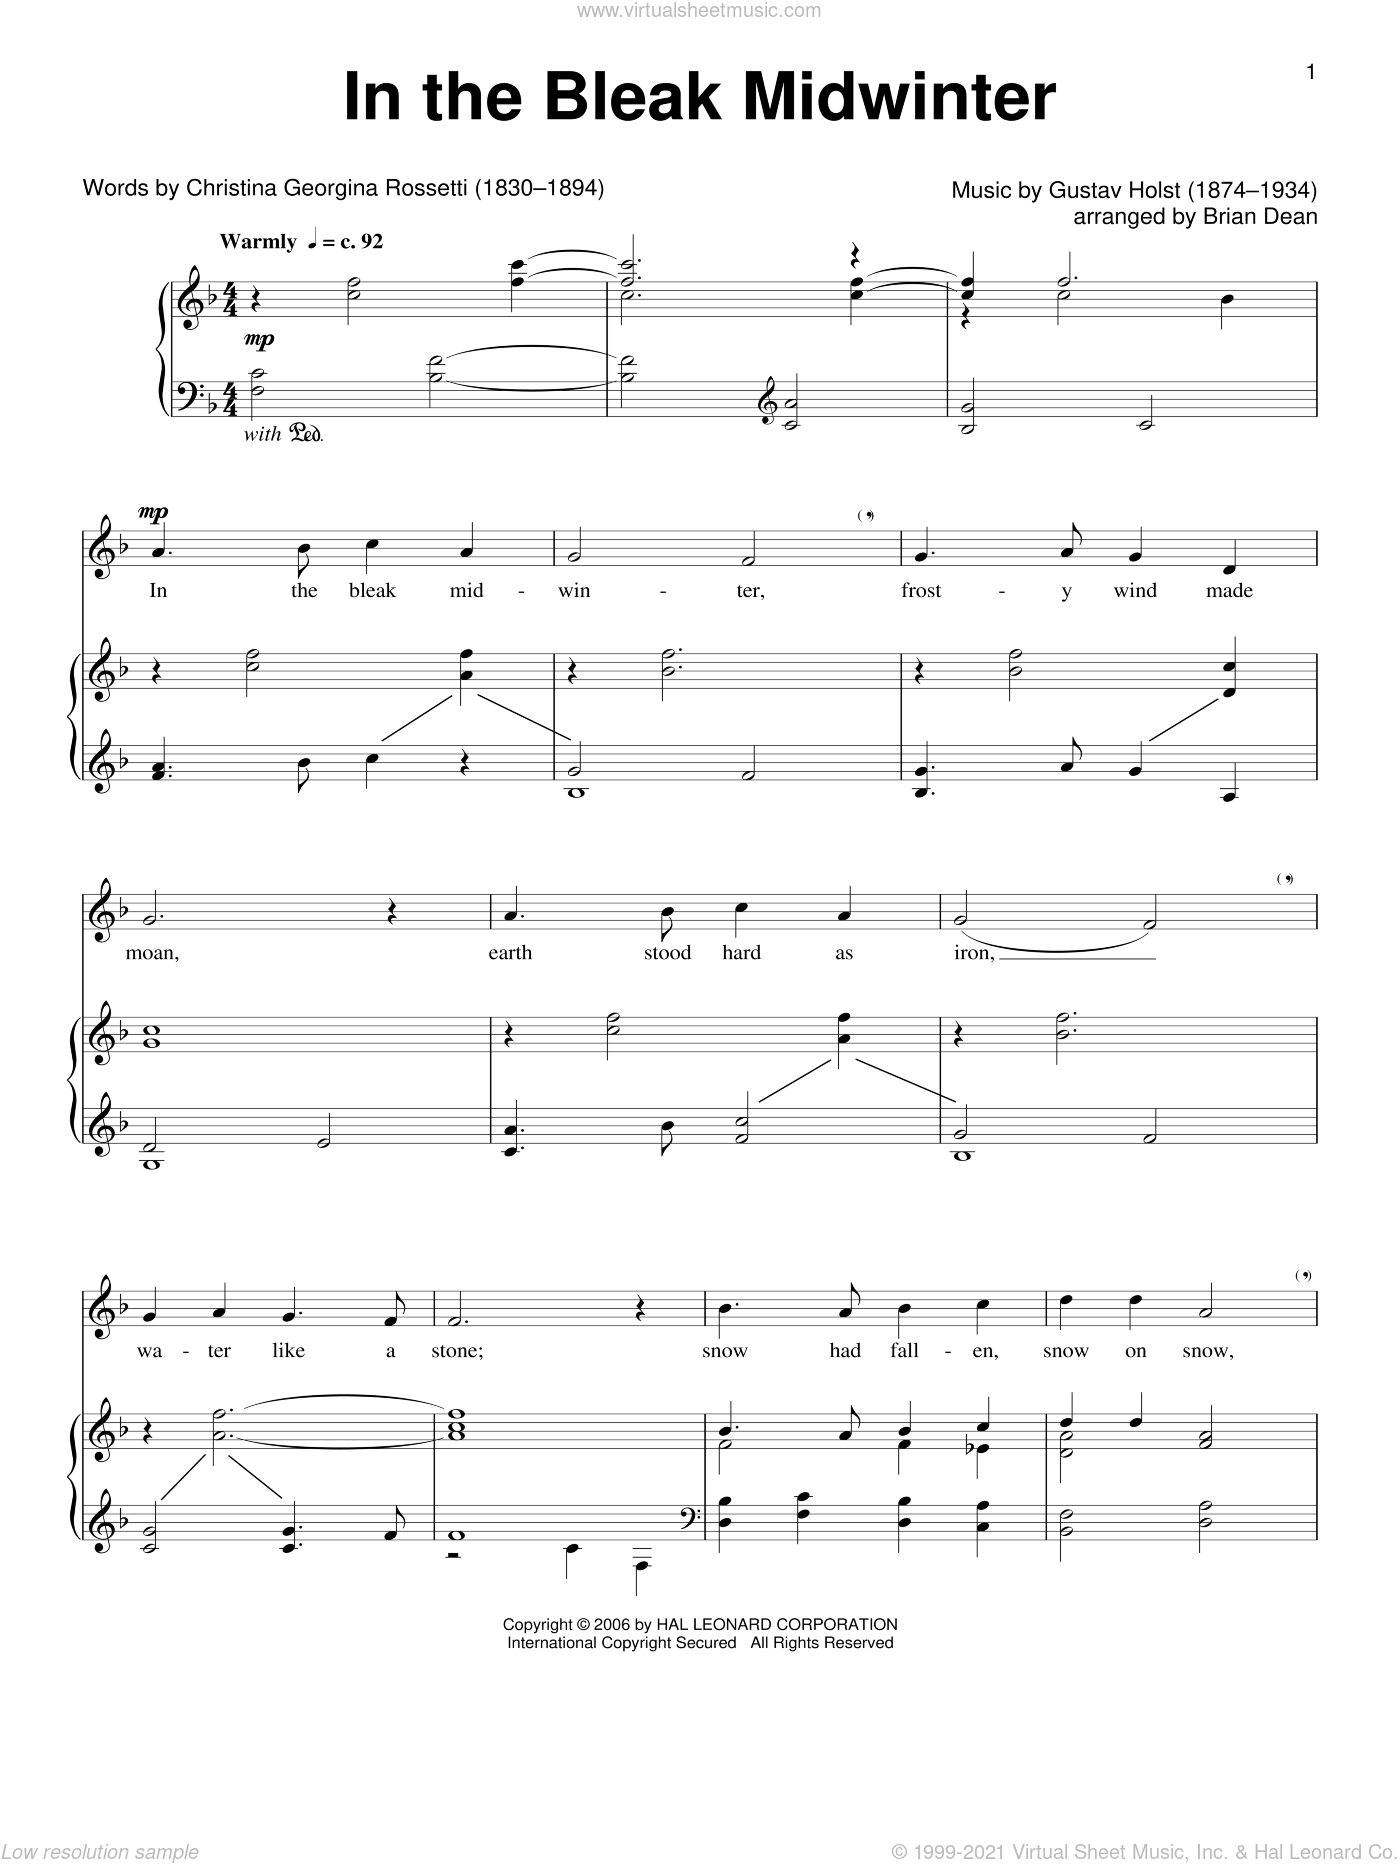 In The Bleak Midwinter sheet music for voice and piano by Gustav Holst and Christina Rossetti, classical score, intermediate skill level